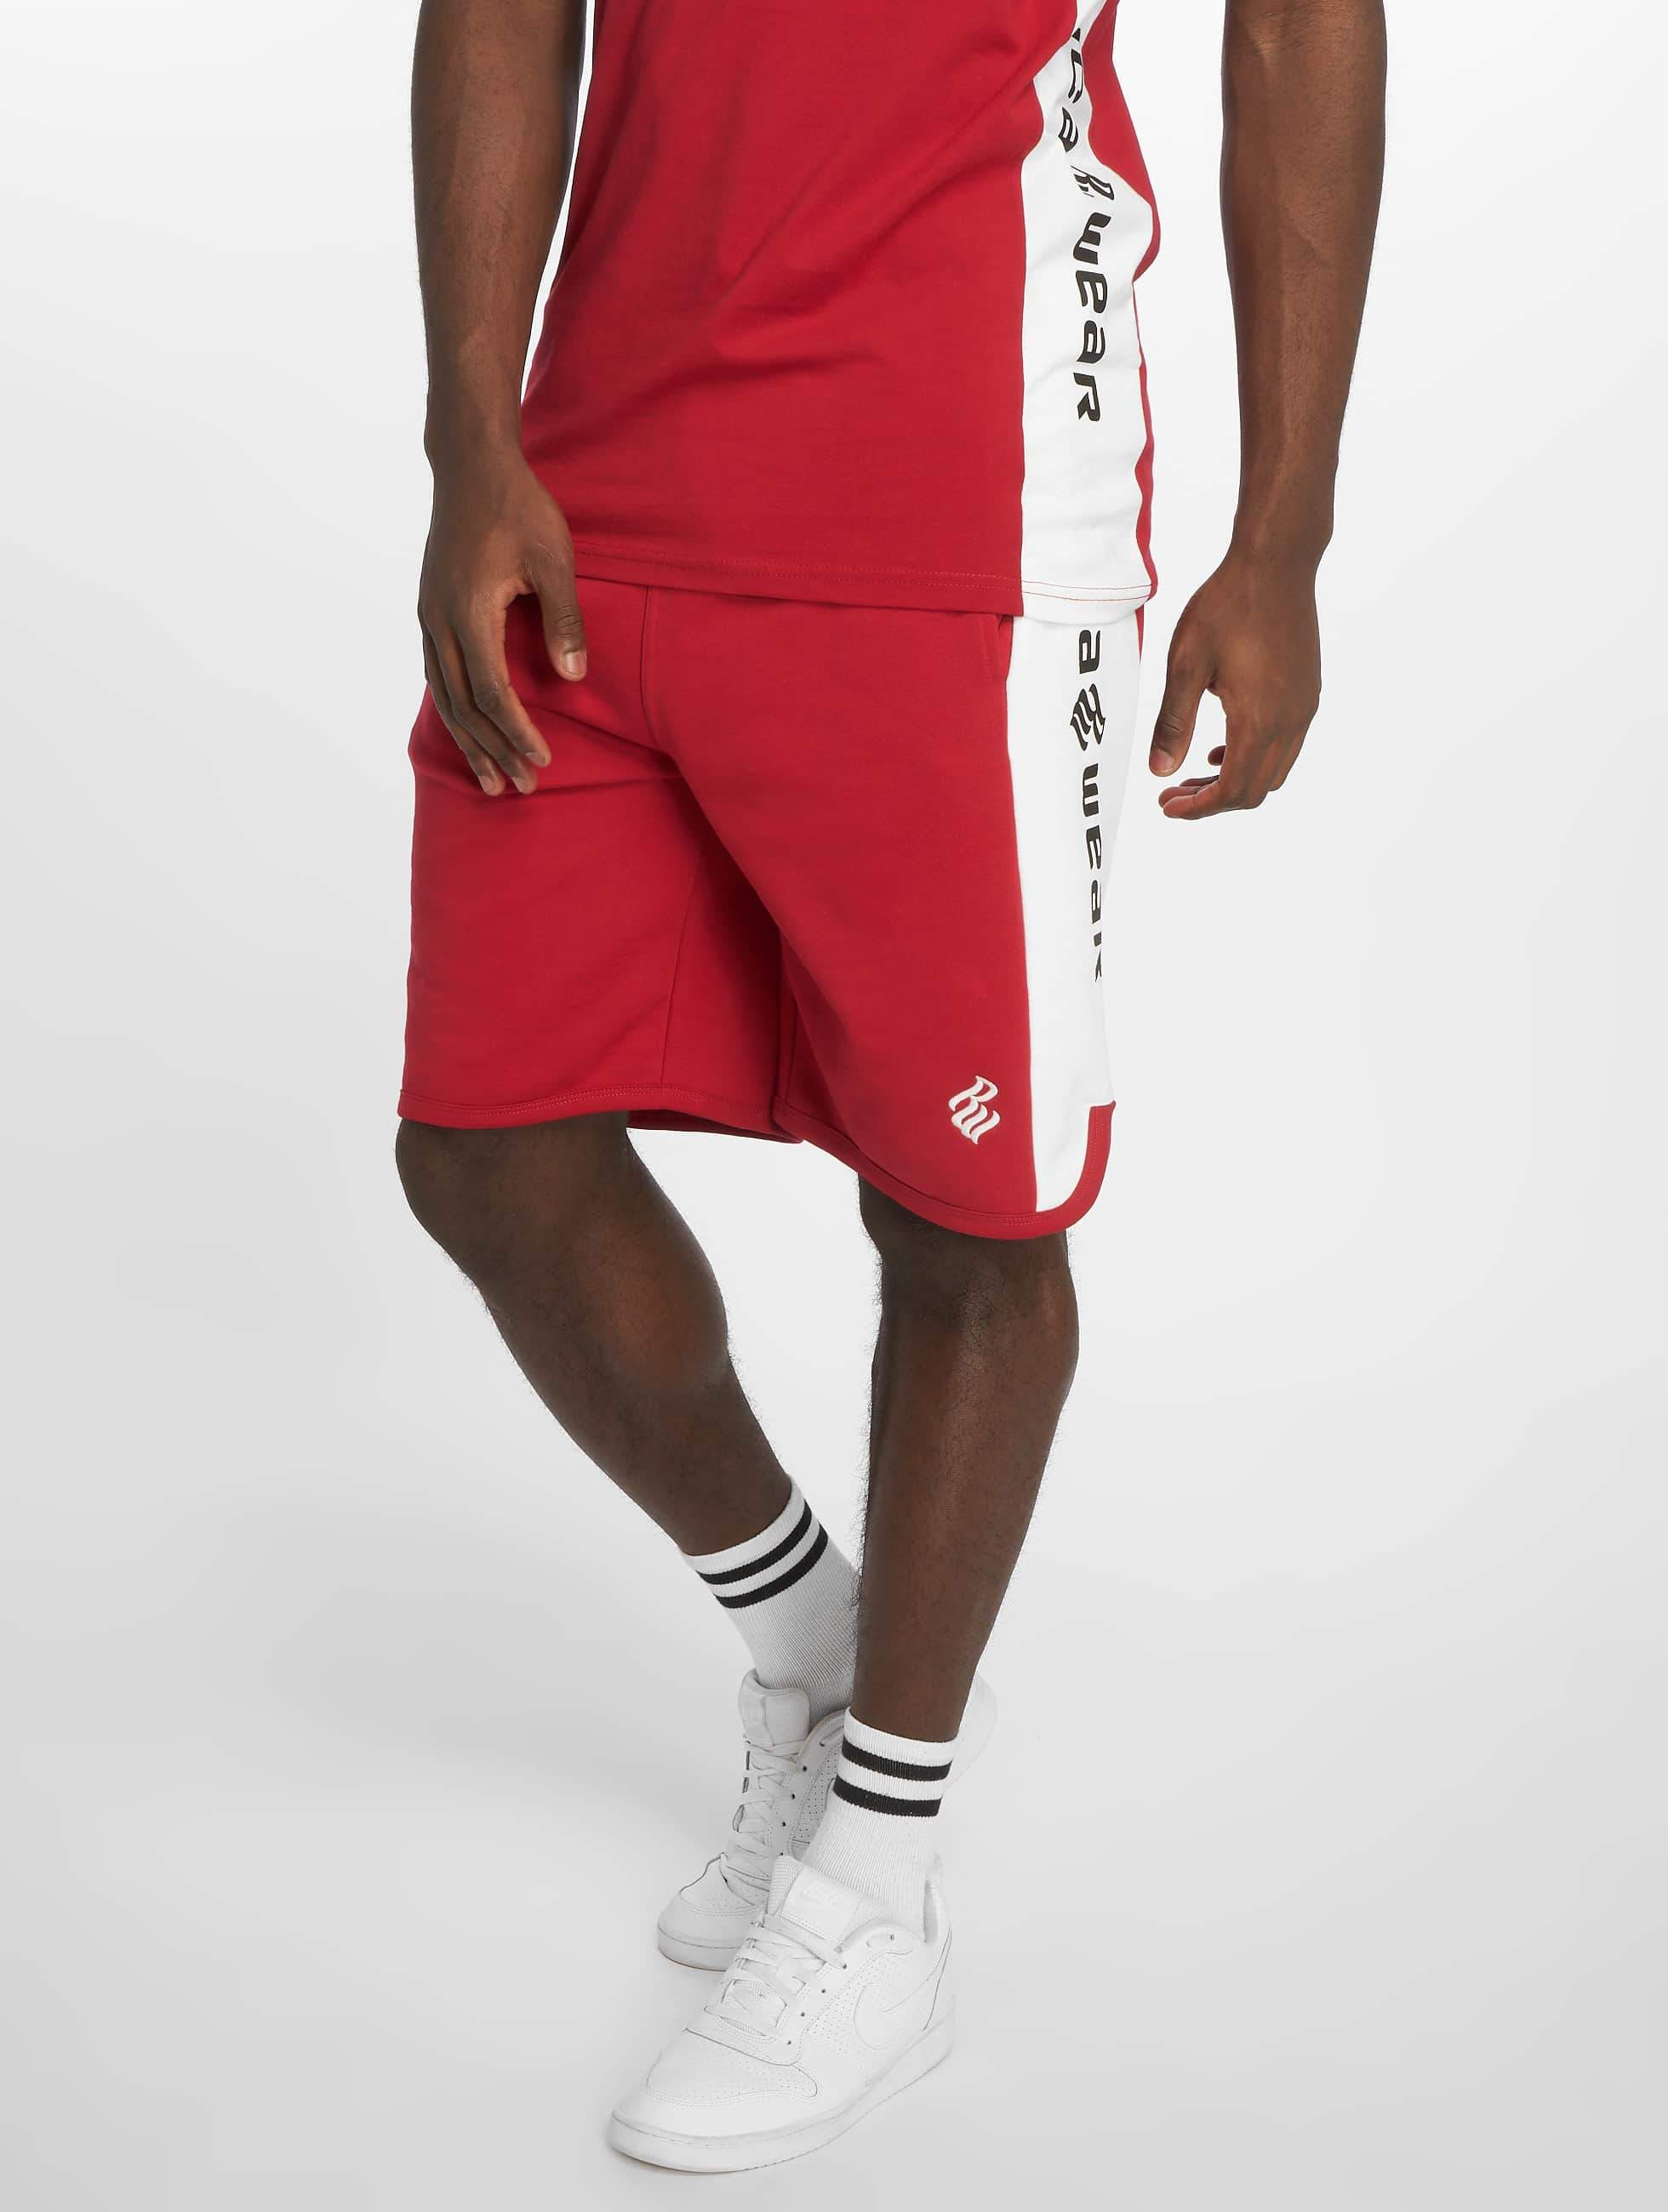 Rocawear / Short Double Logo in red S